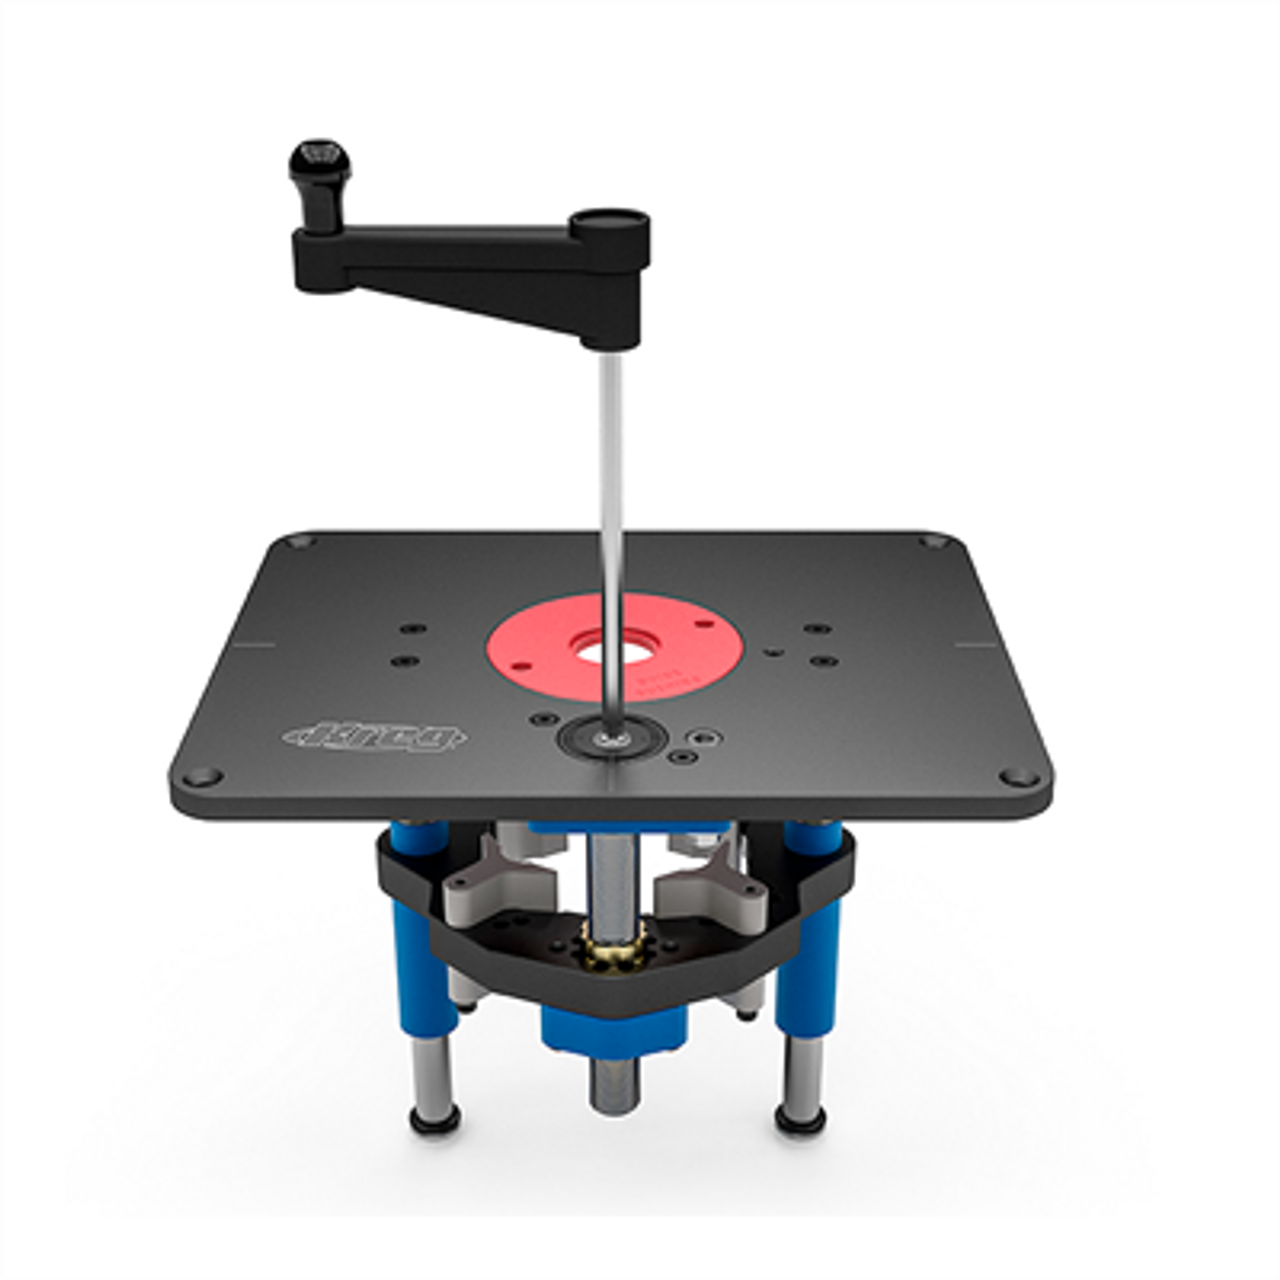 Kreg precision router lift prs5000 greentooth Images